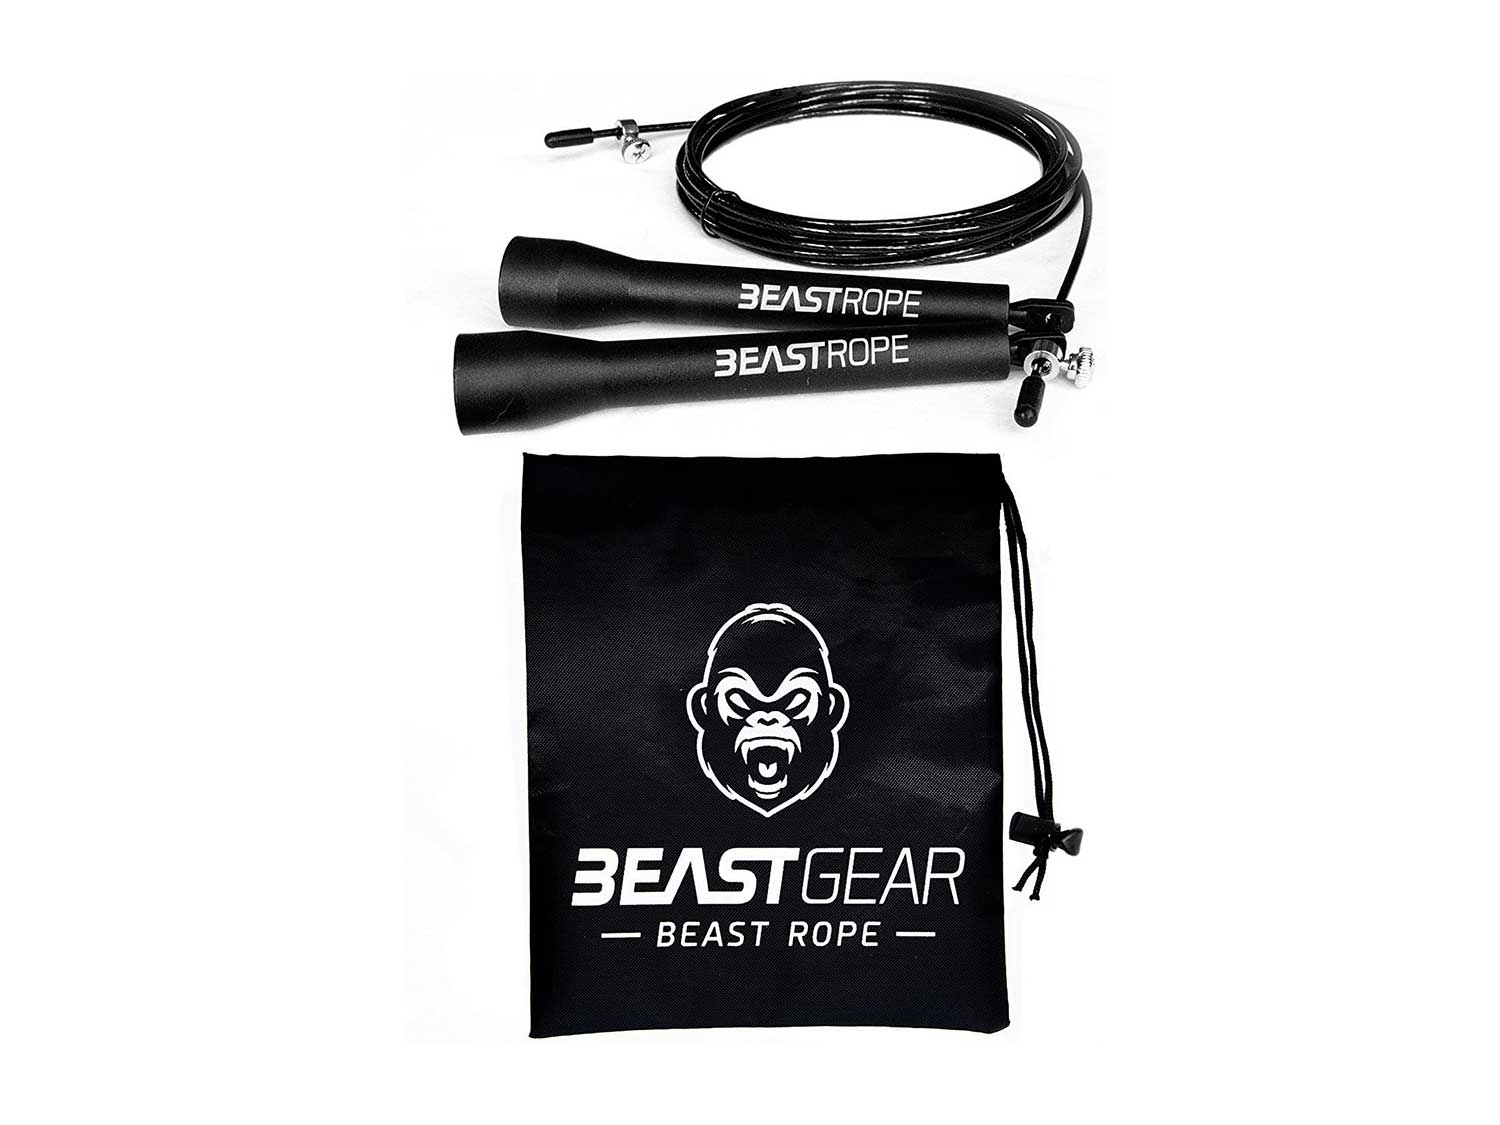 Beast Rope by Beast Gear – Speed Skipping Rope for Fitness, Conditioning & Fat Loss. Ideal for Crossfit, Boxing, MMA, HIIT, Interval Training & Double Unders